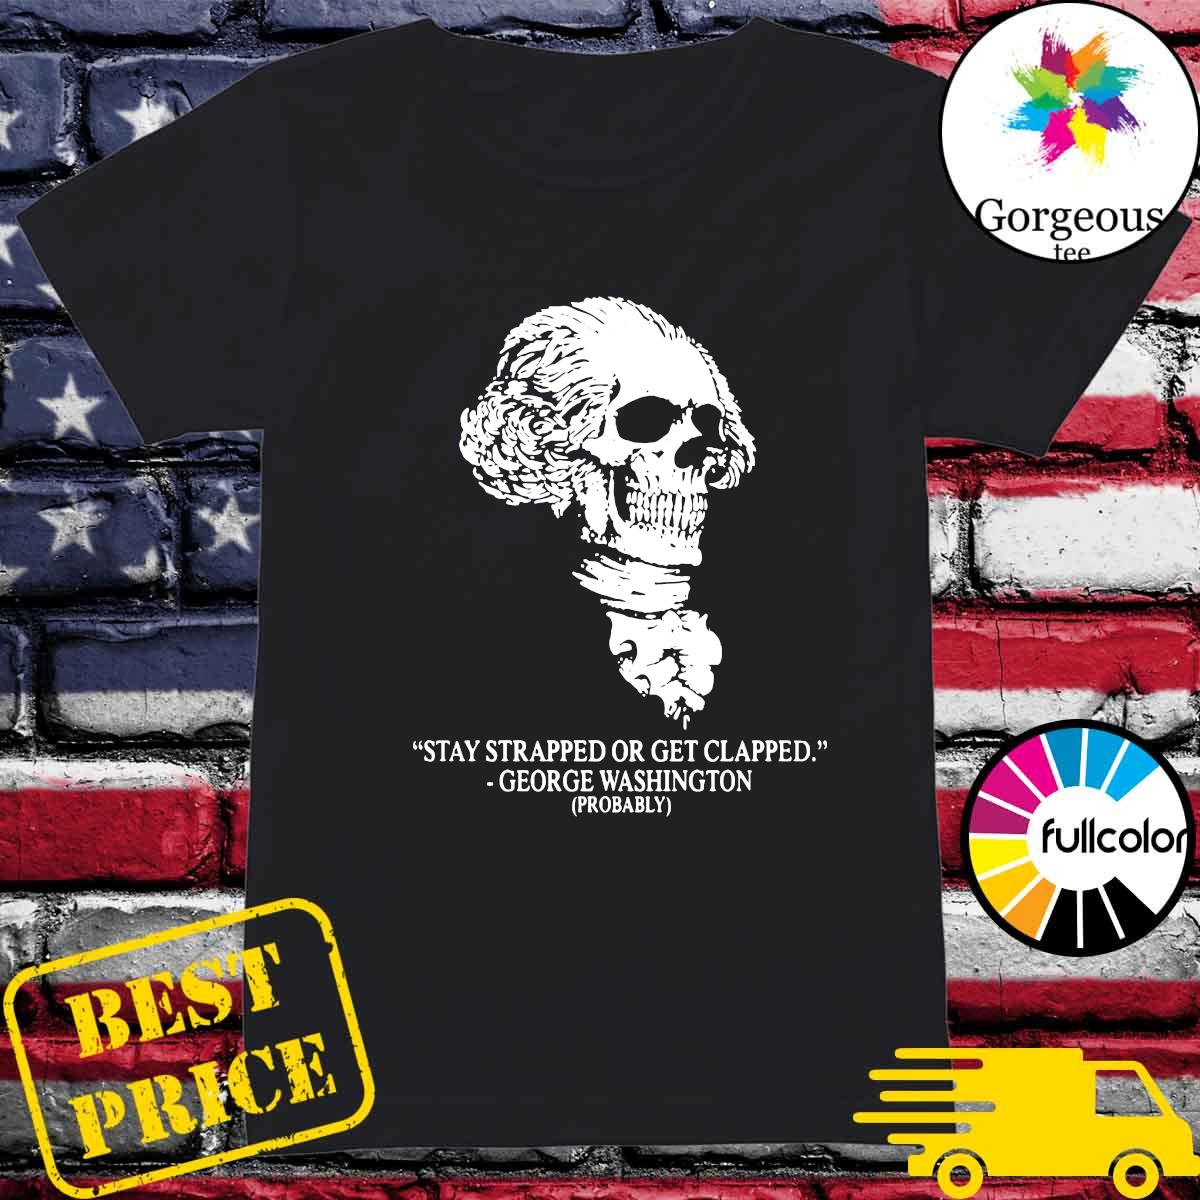 Warrior 12 Stay Strapped Or Get Clapped George Washington Probably Shirt Hoodie Sweater Long Sleeve And Tank Top Meme generator, instant notifications, image/video download, achievements and many more! gorgeoustee